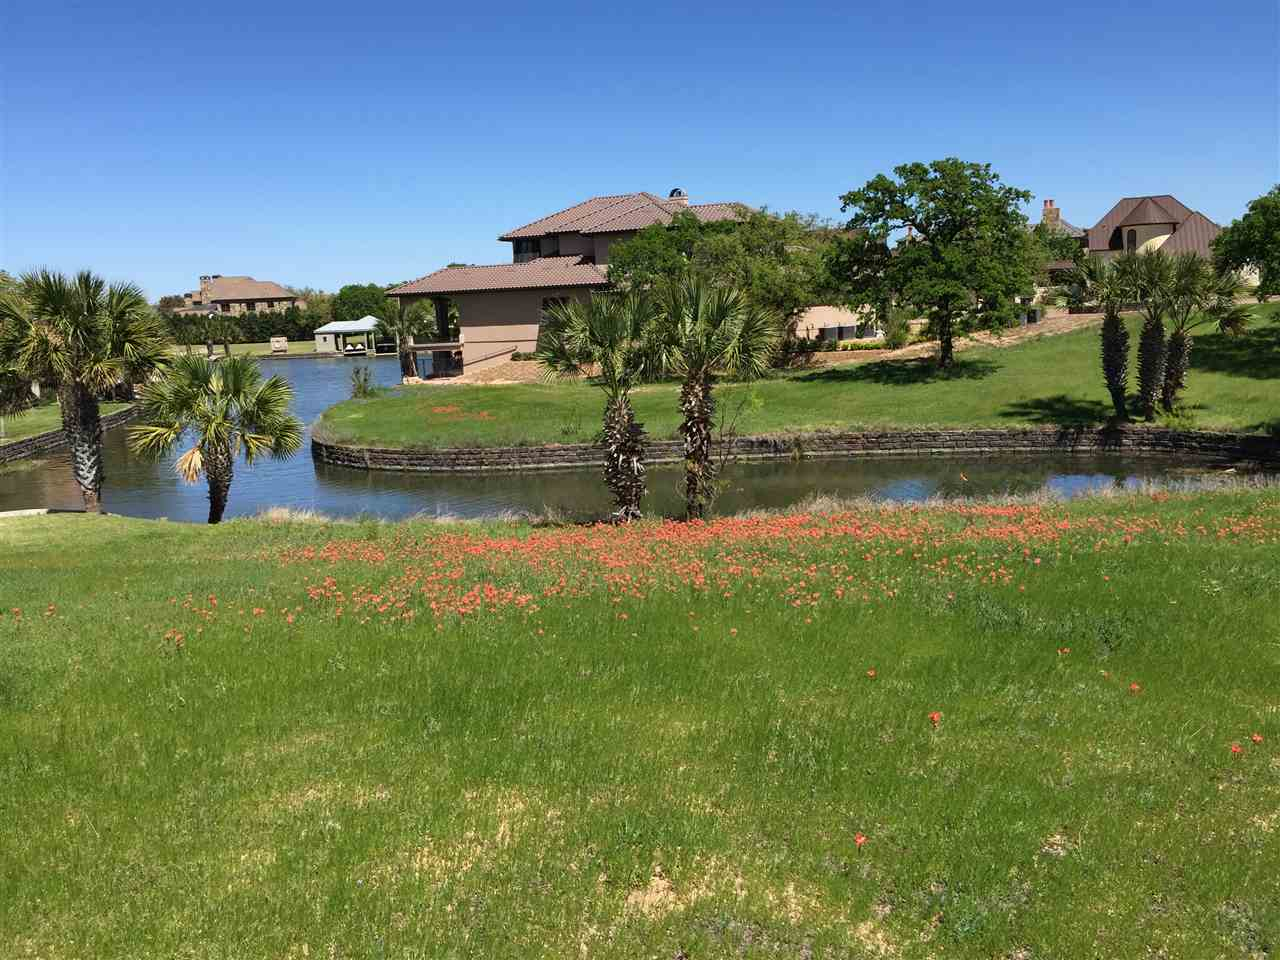 Additional photo for property listing at 85-B Applehead Island  Horseshoe Bay, Texas 78657 Estados Unidos